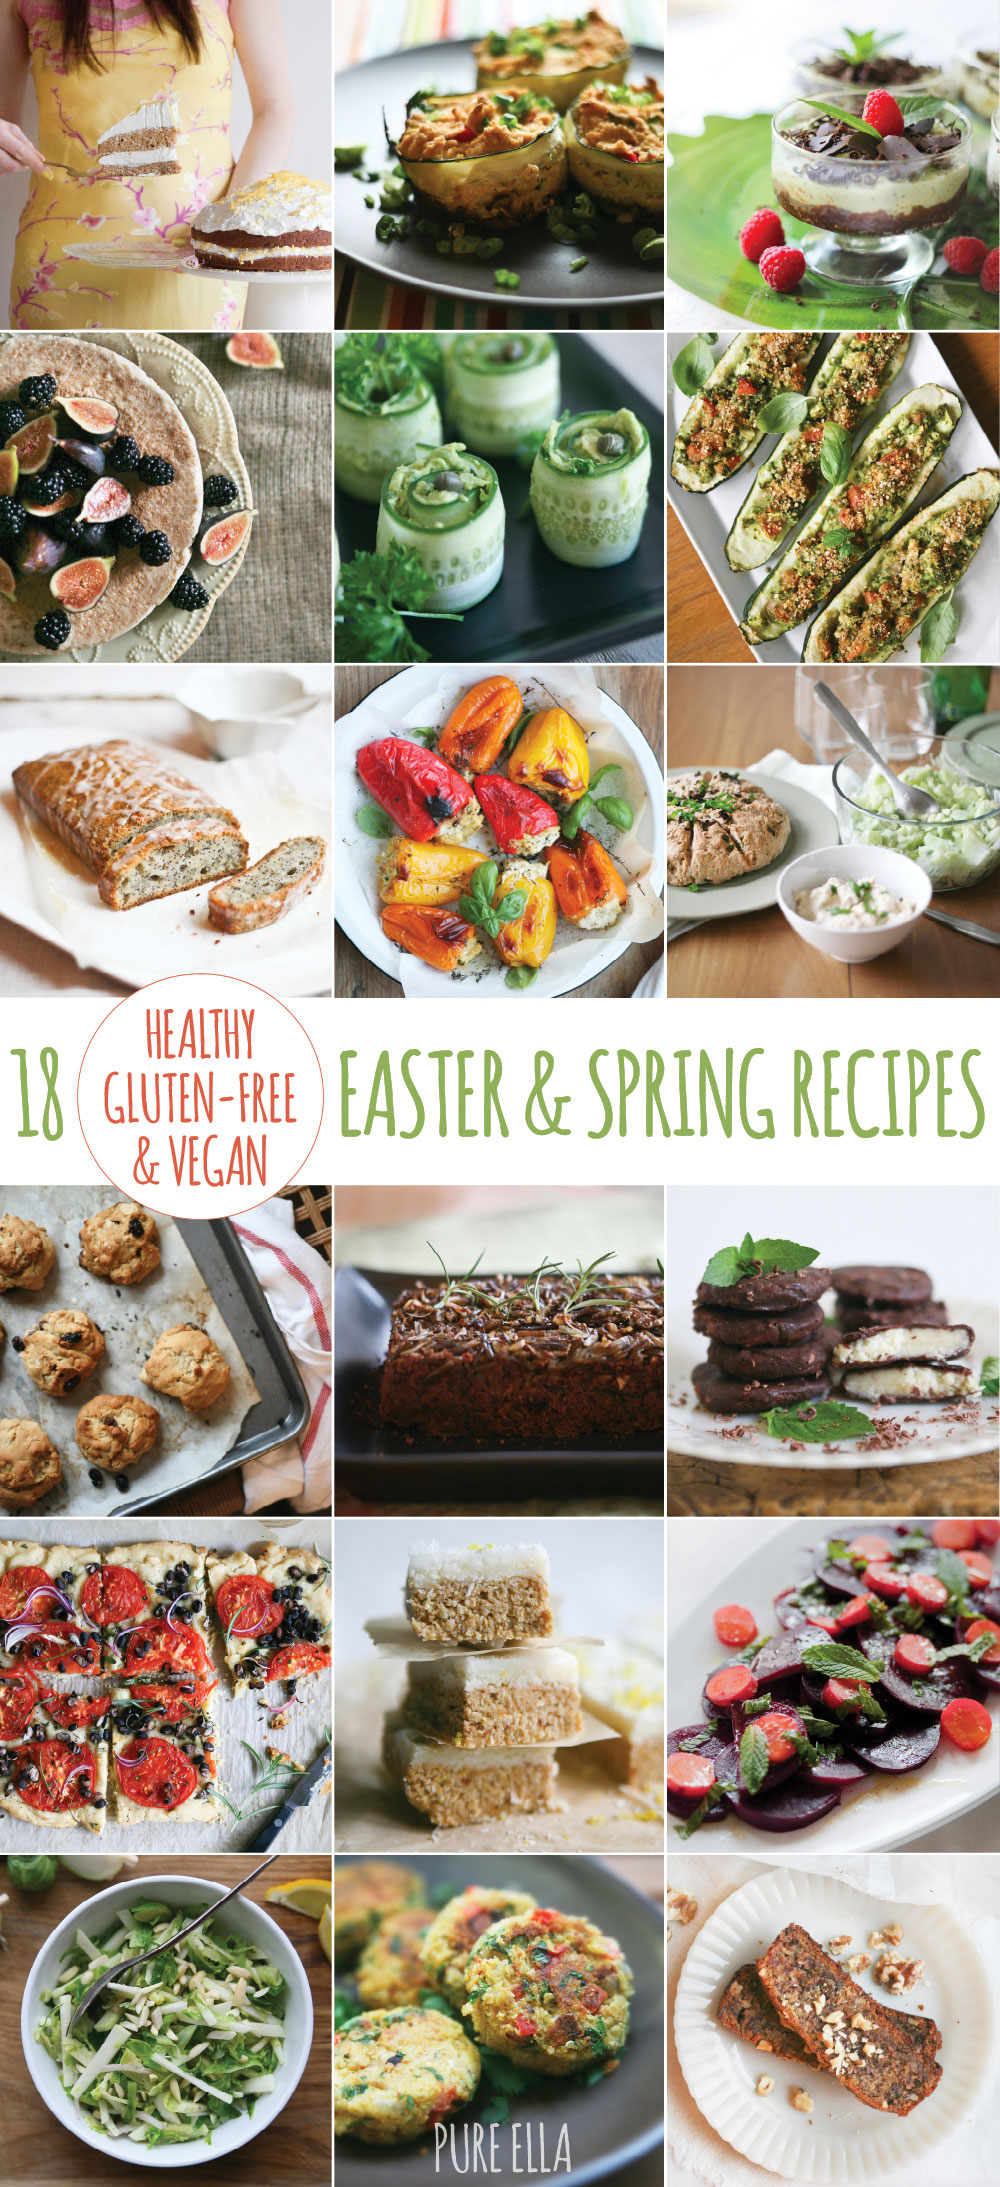 Pure-Ella-18-healthy-gluten-free-and-vegan-easter-and-spring-recipes